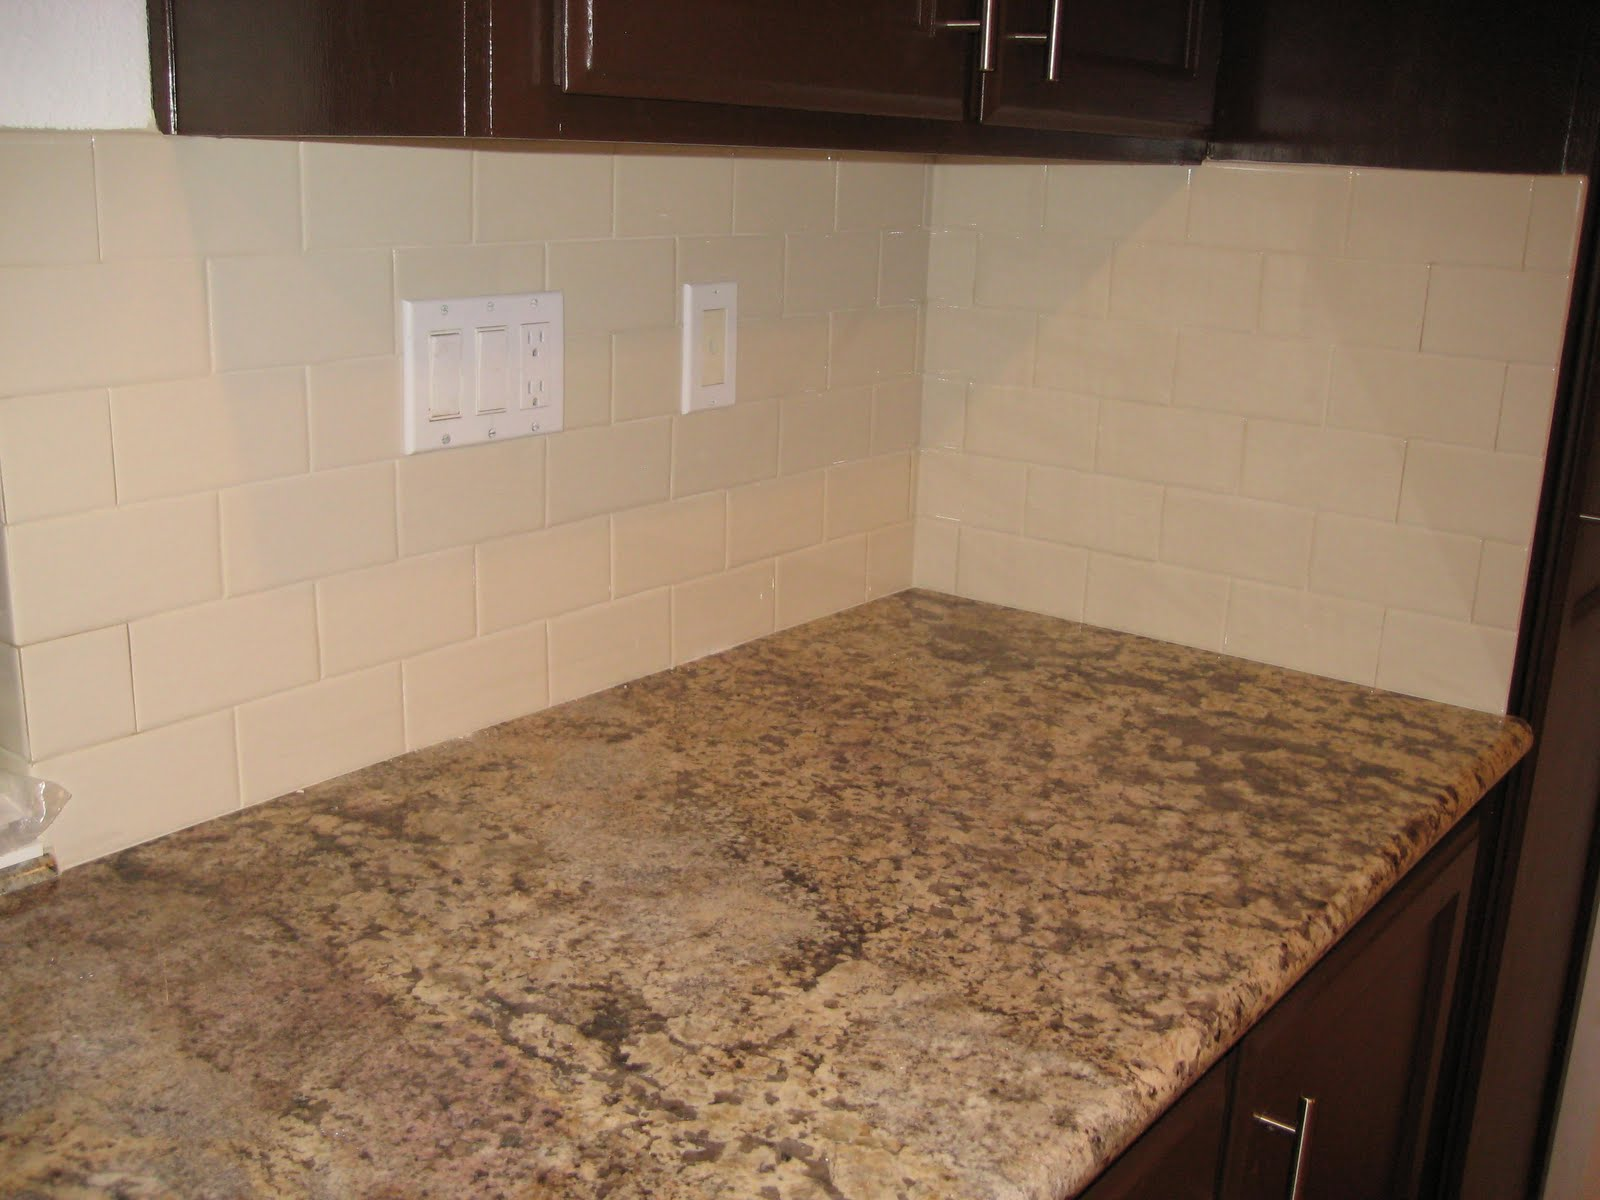 Almond Subway Tile Backsplash